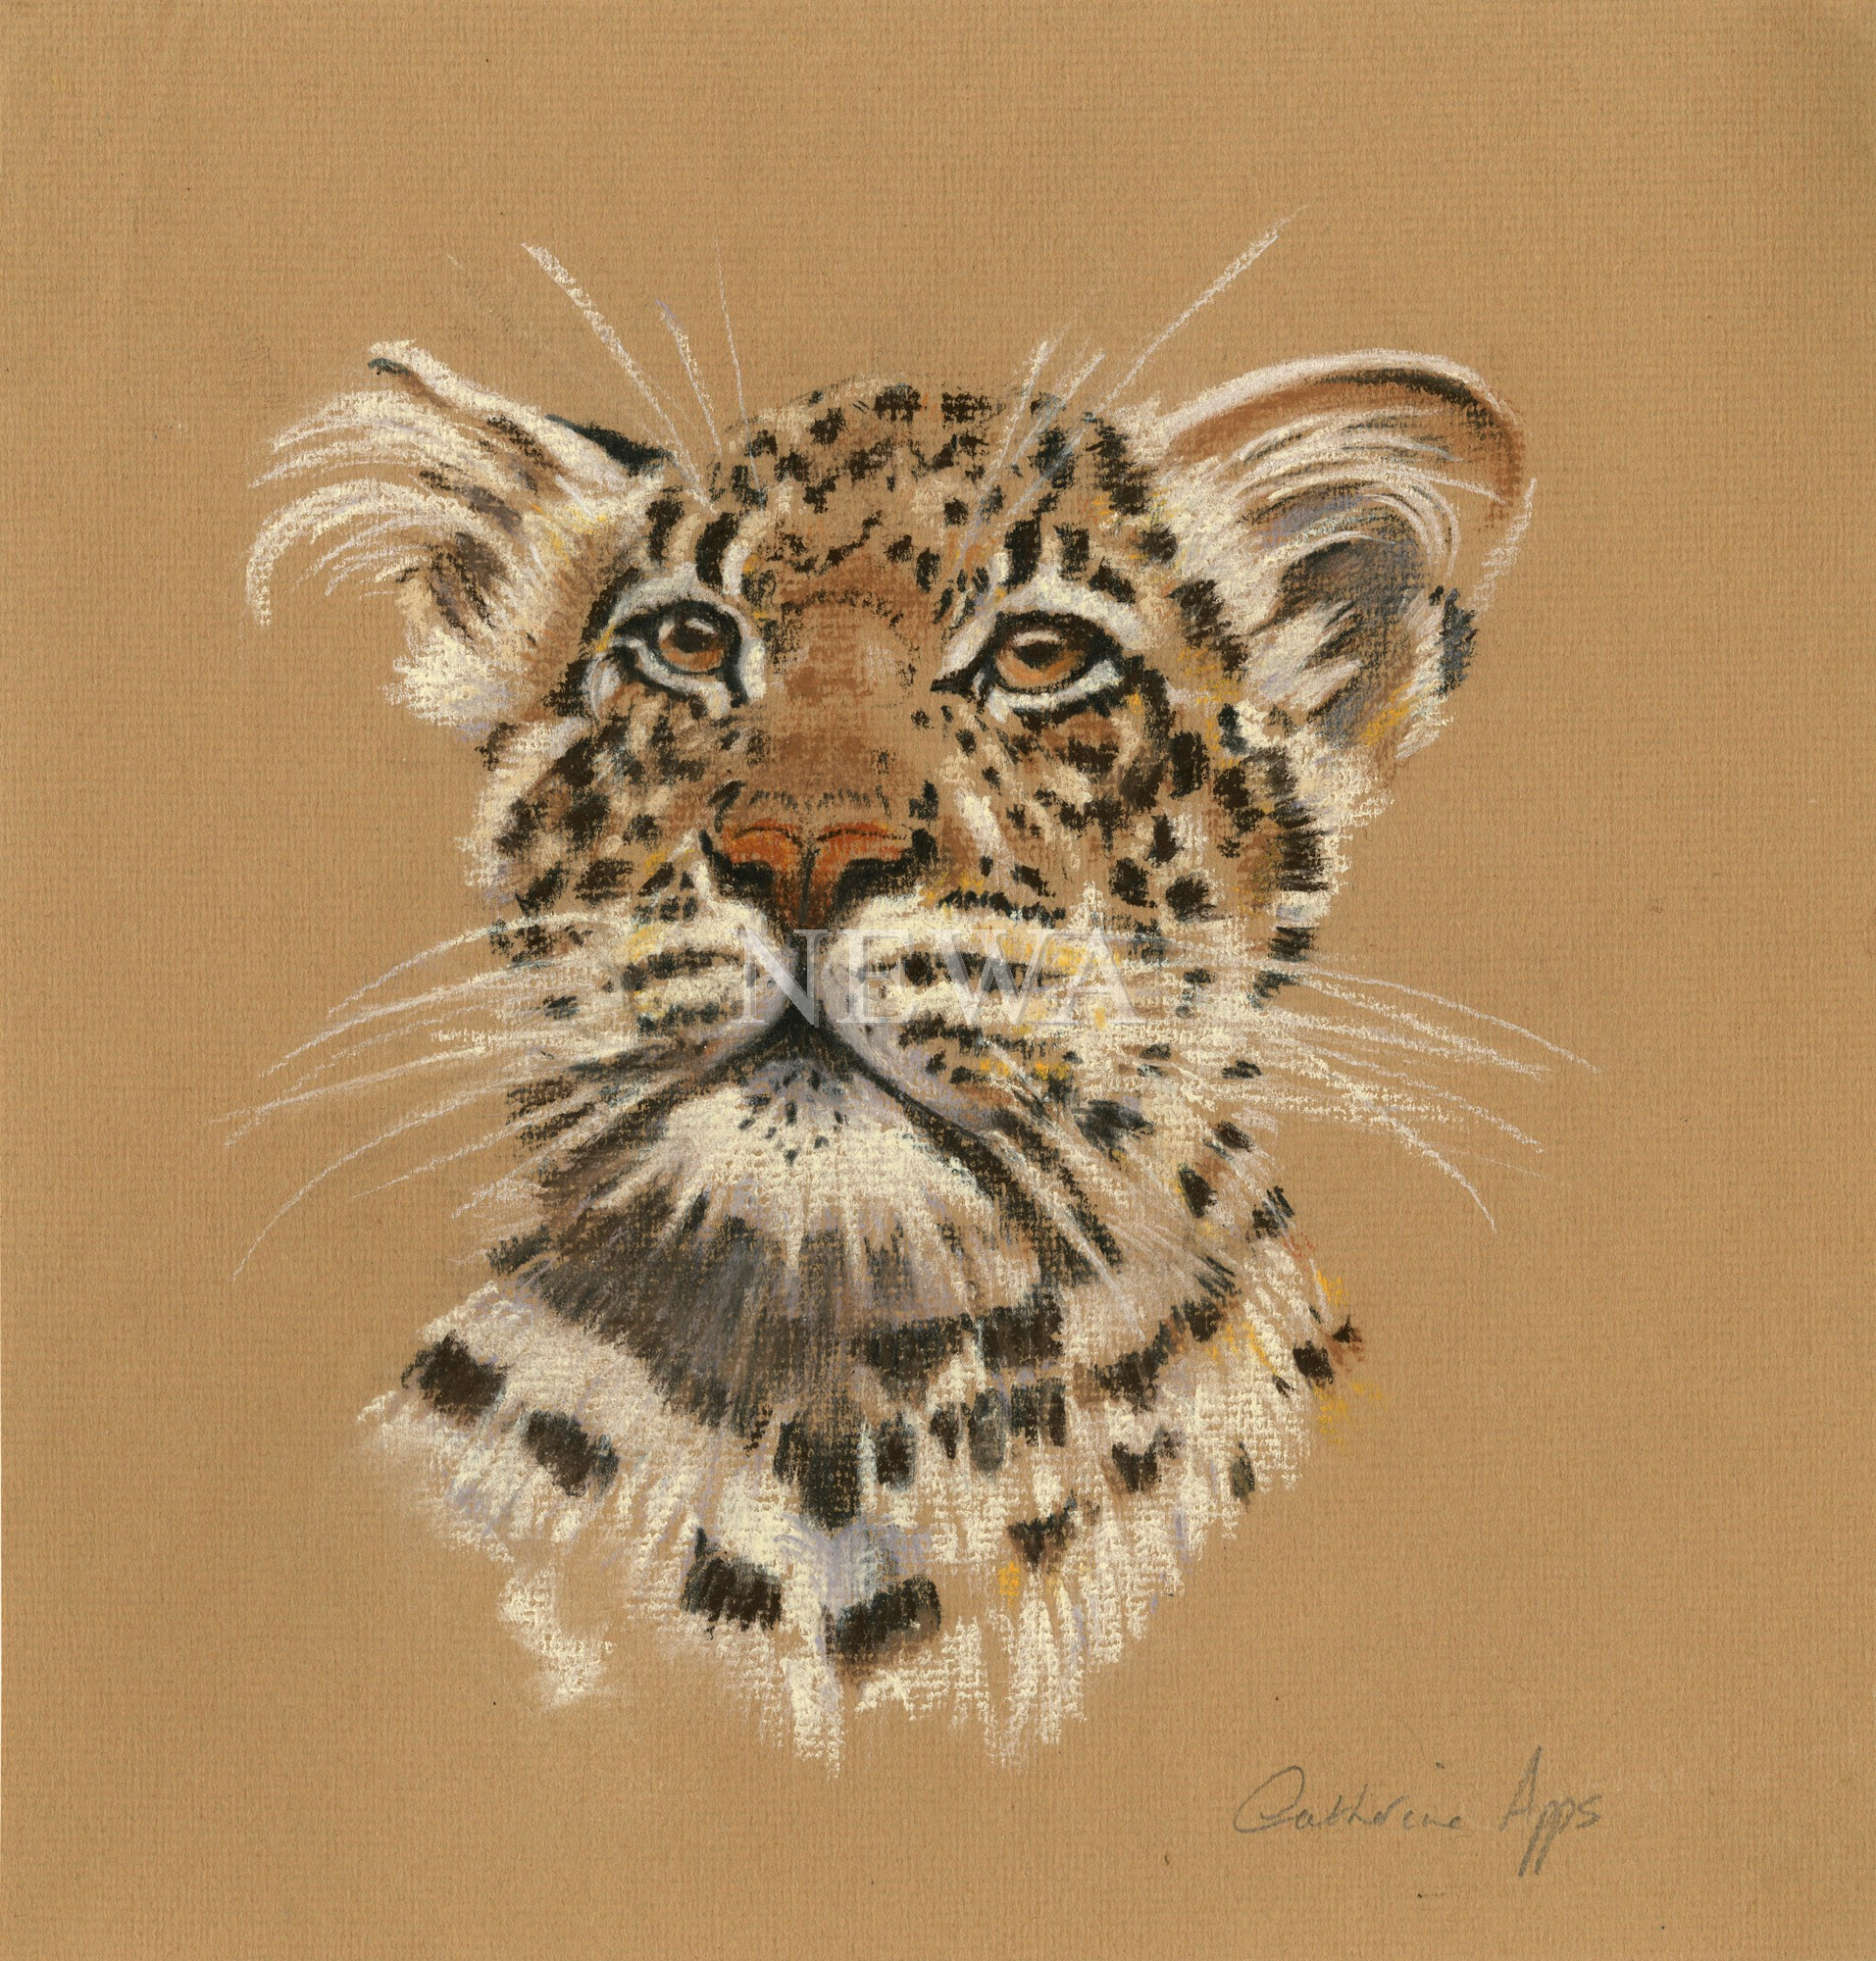 Leopard Portrait by Catherine Apps